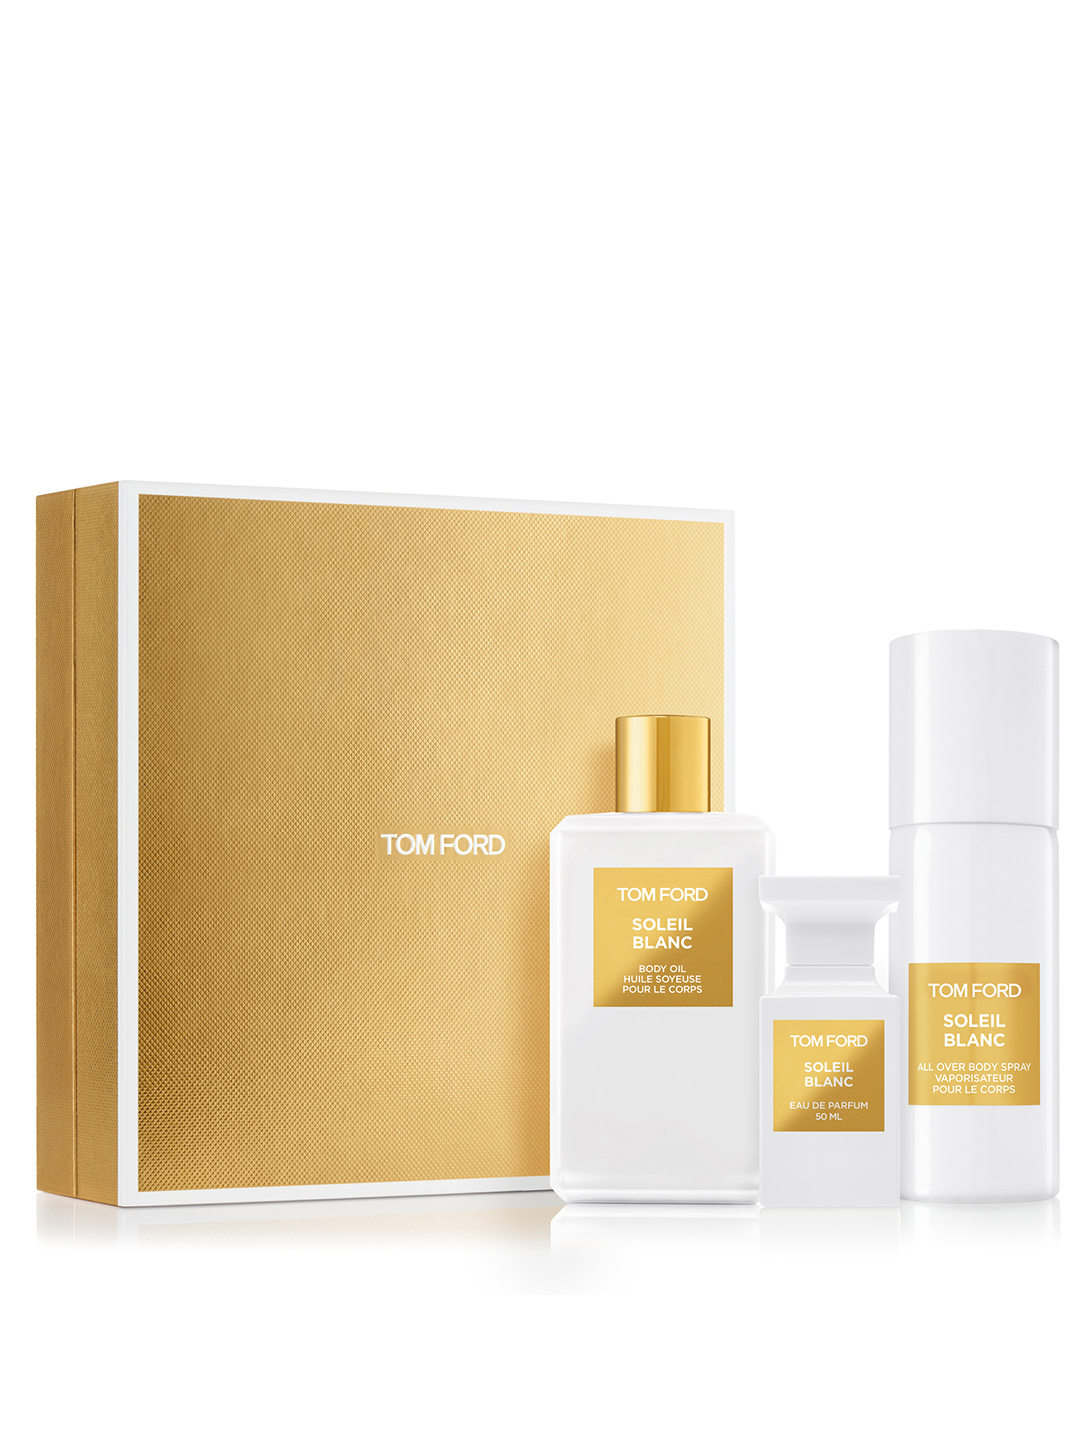 TOM FORD Soleil Blanc 3 Piece Set Beauty